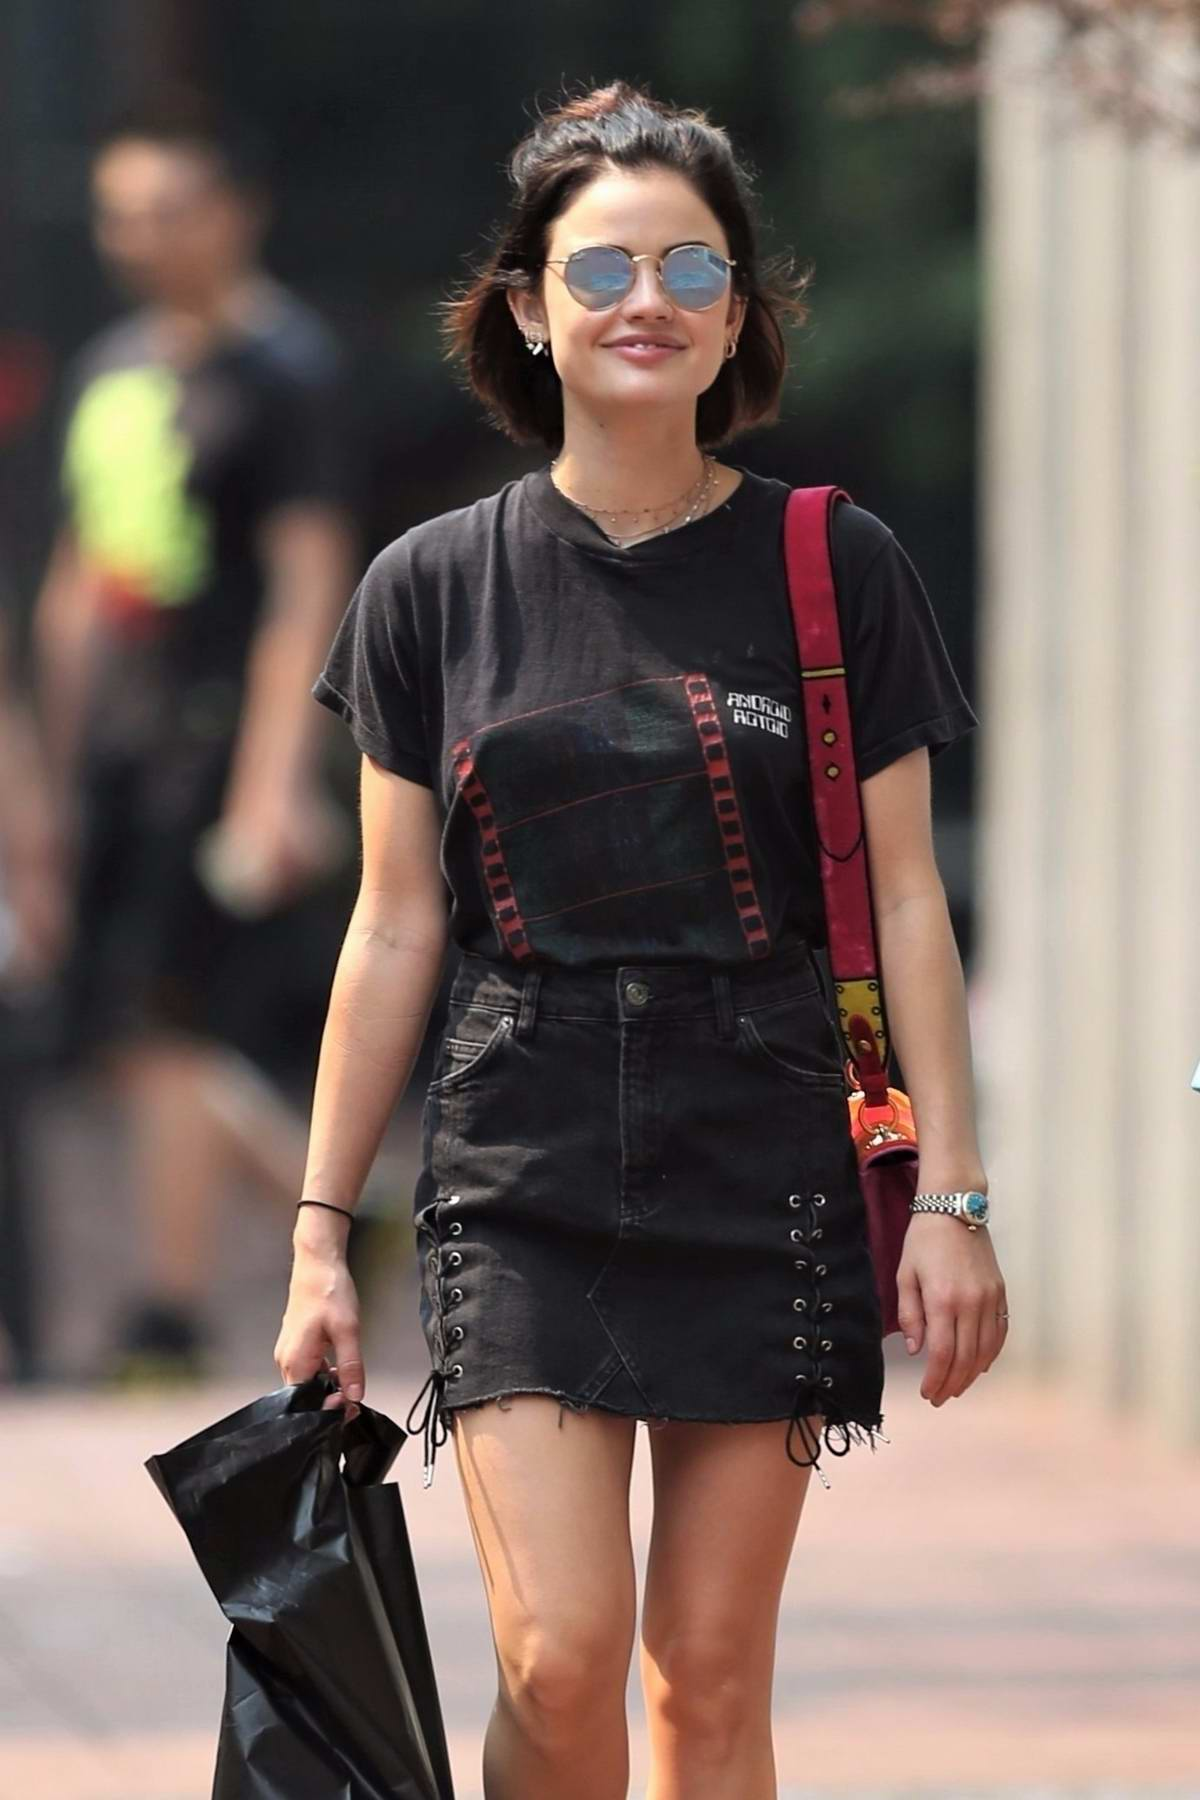 Lucy Hale Rocks A Grunge Look While Shopping In Vancouver